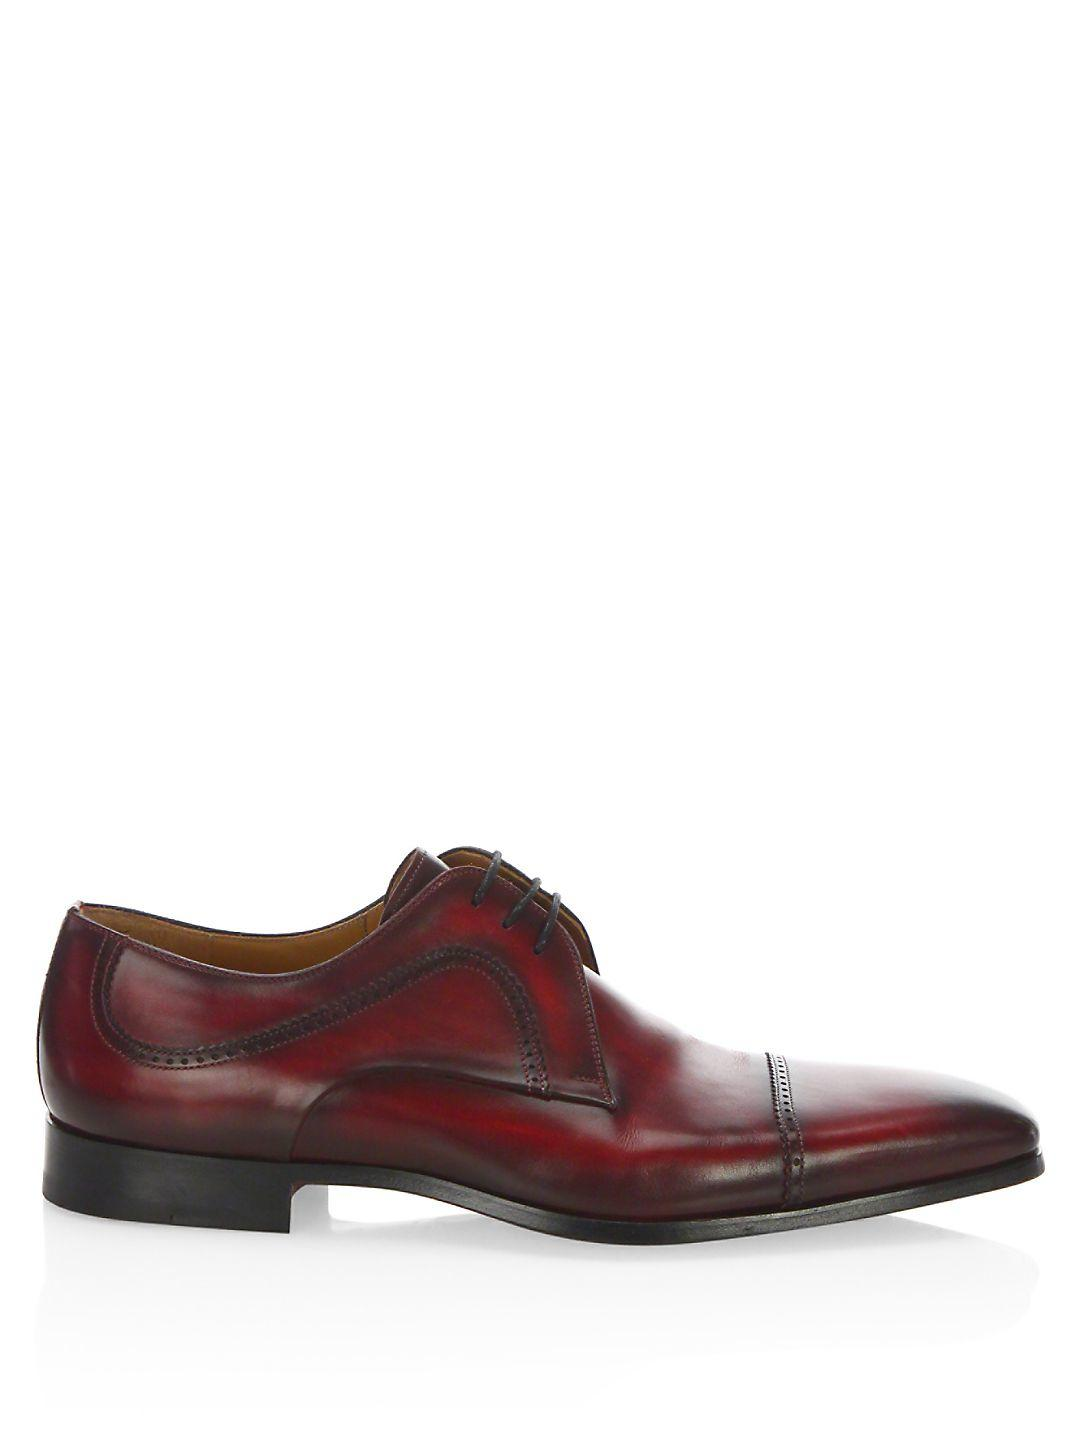 Saks Fifth Avenue Saks Fifth Avenue By Magnanni Graus Leather Oxfords in Red for Men